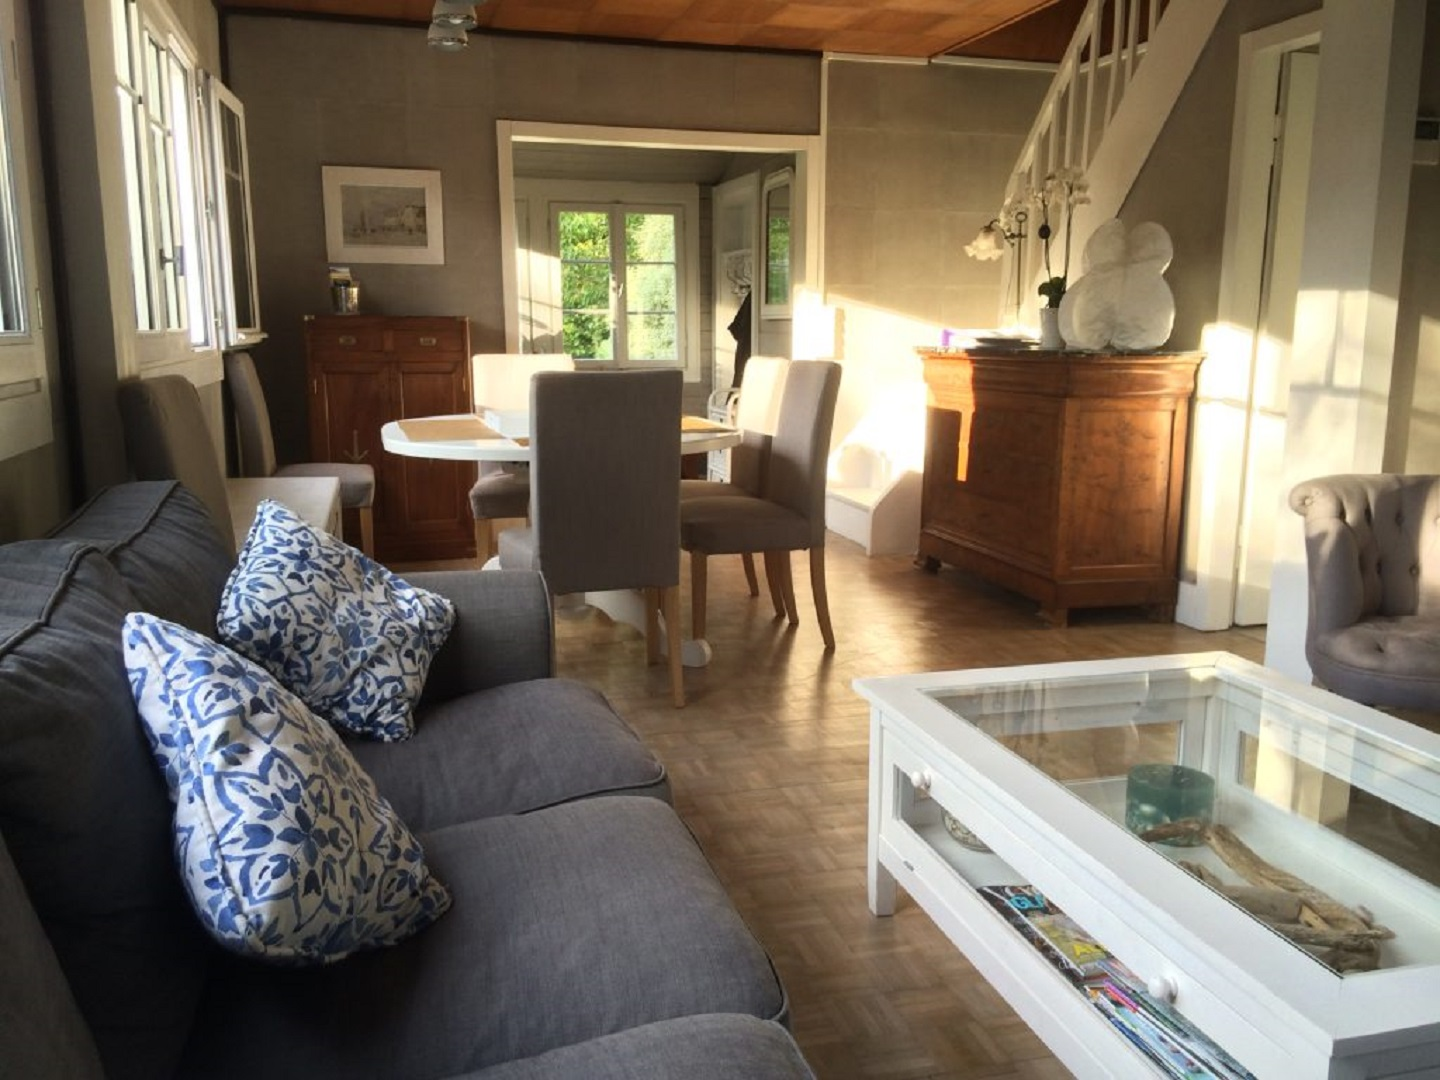 A living room filled with furniture and a fire place at Les gîtes d'Émilie.